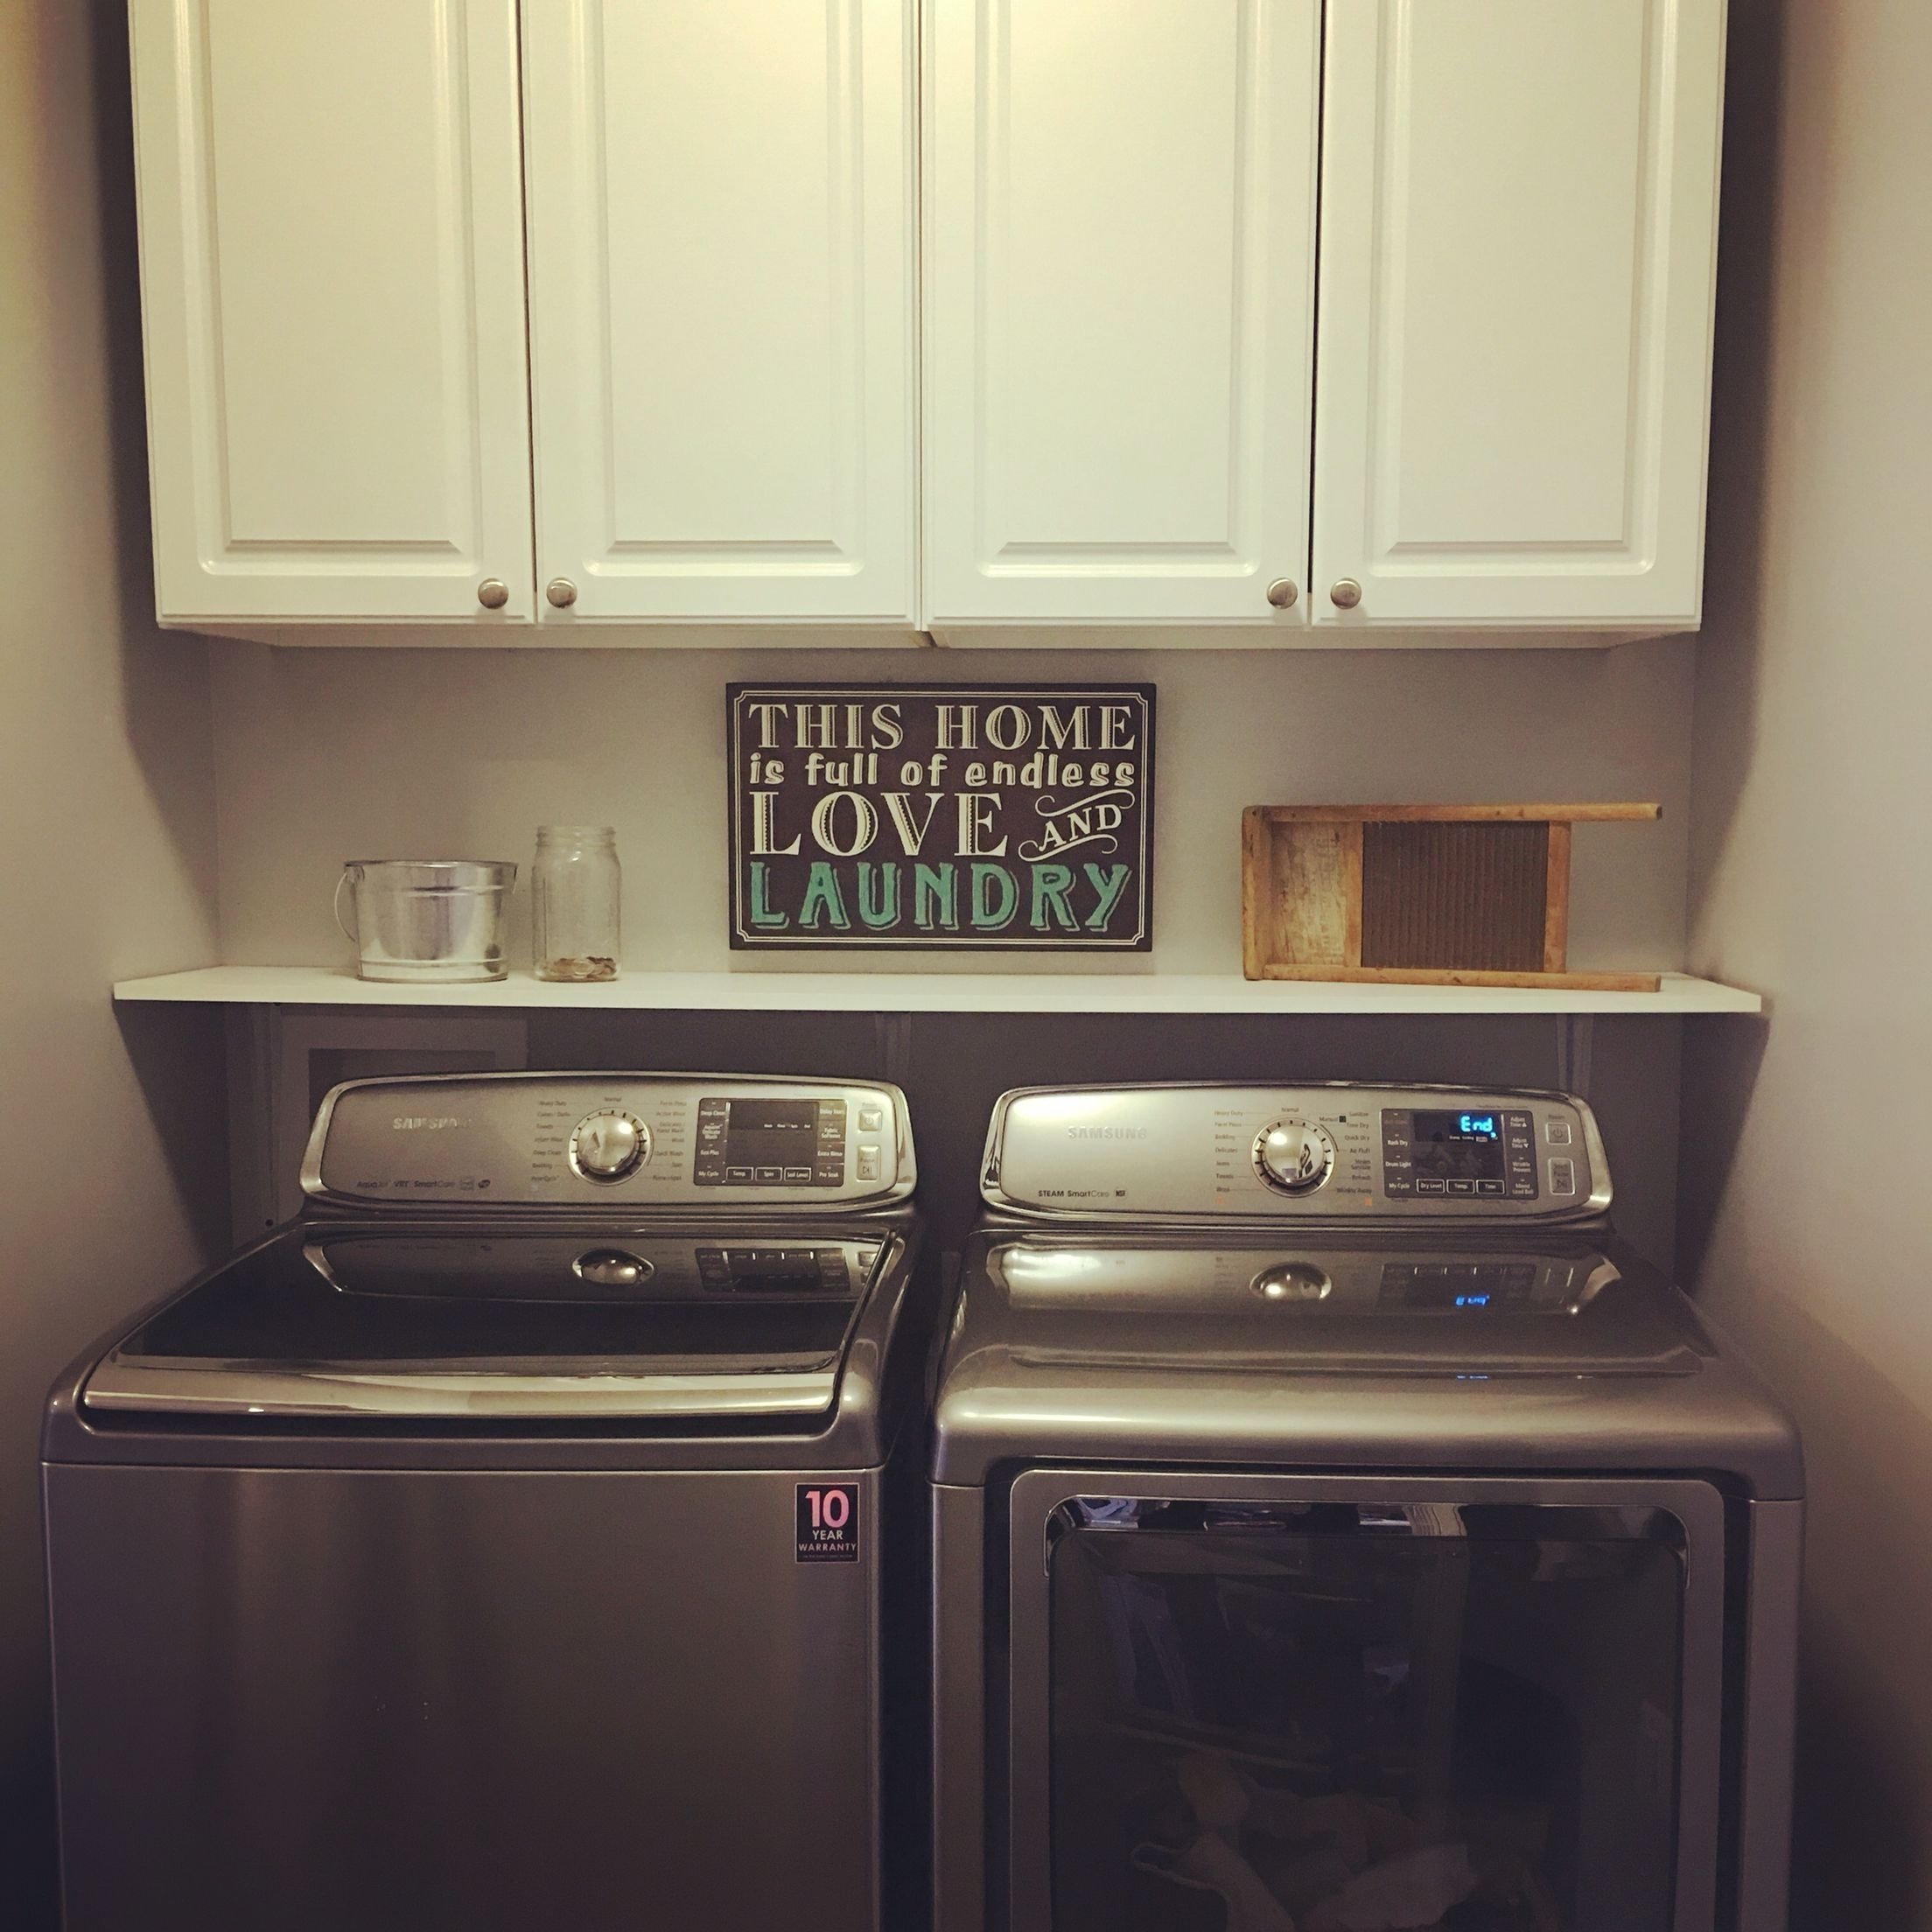 10 Best Laundry Room Ideas For Small Spaces 14 basement laundry room ideas for small space makeovers small 2021